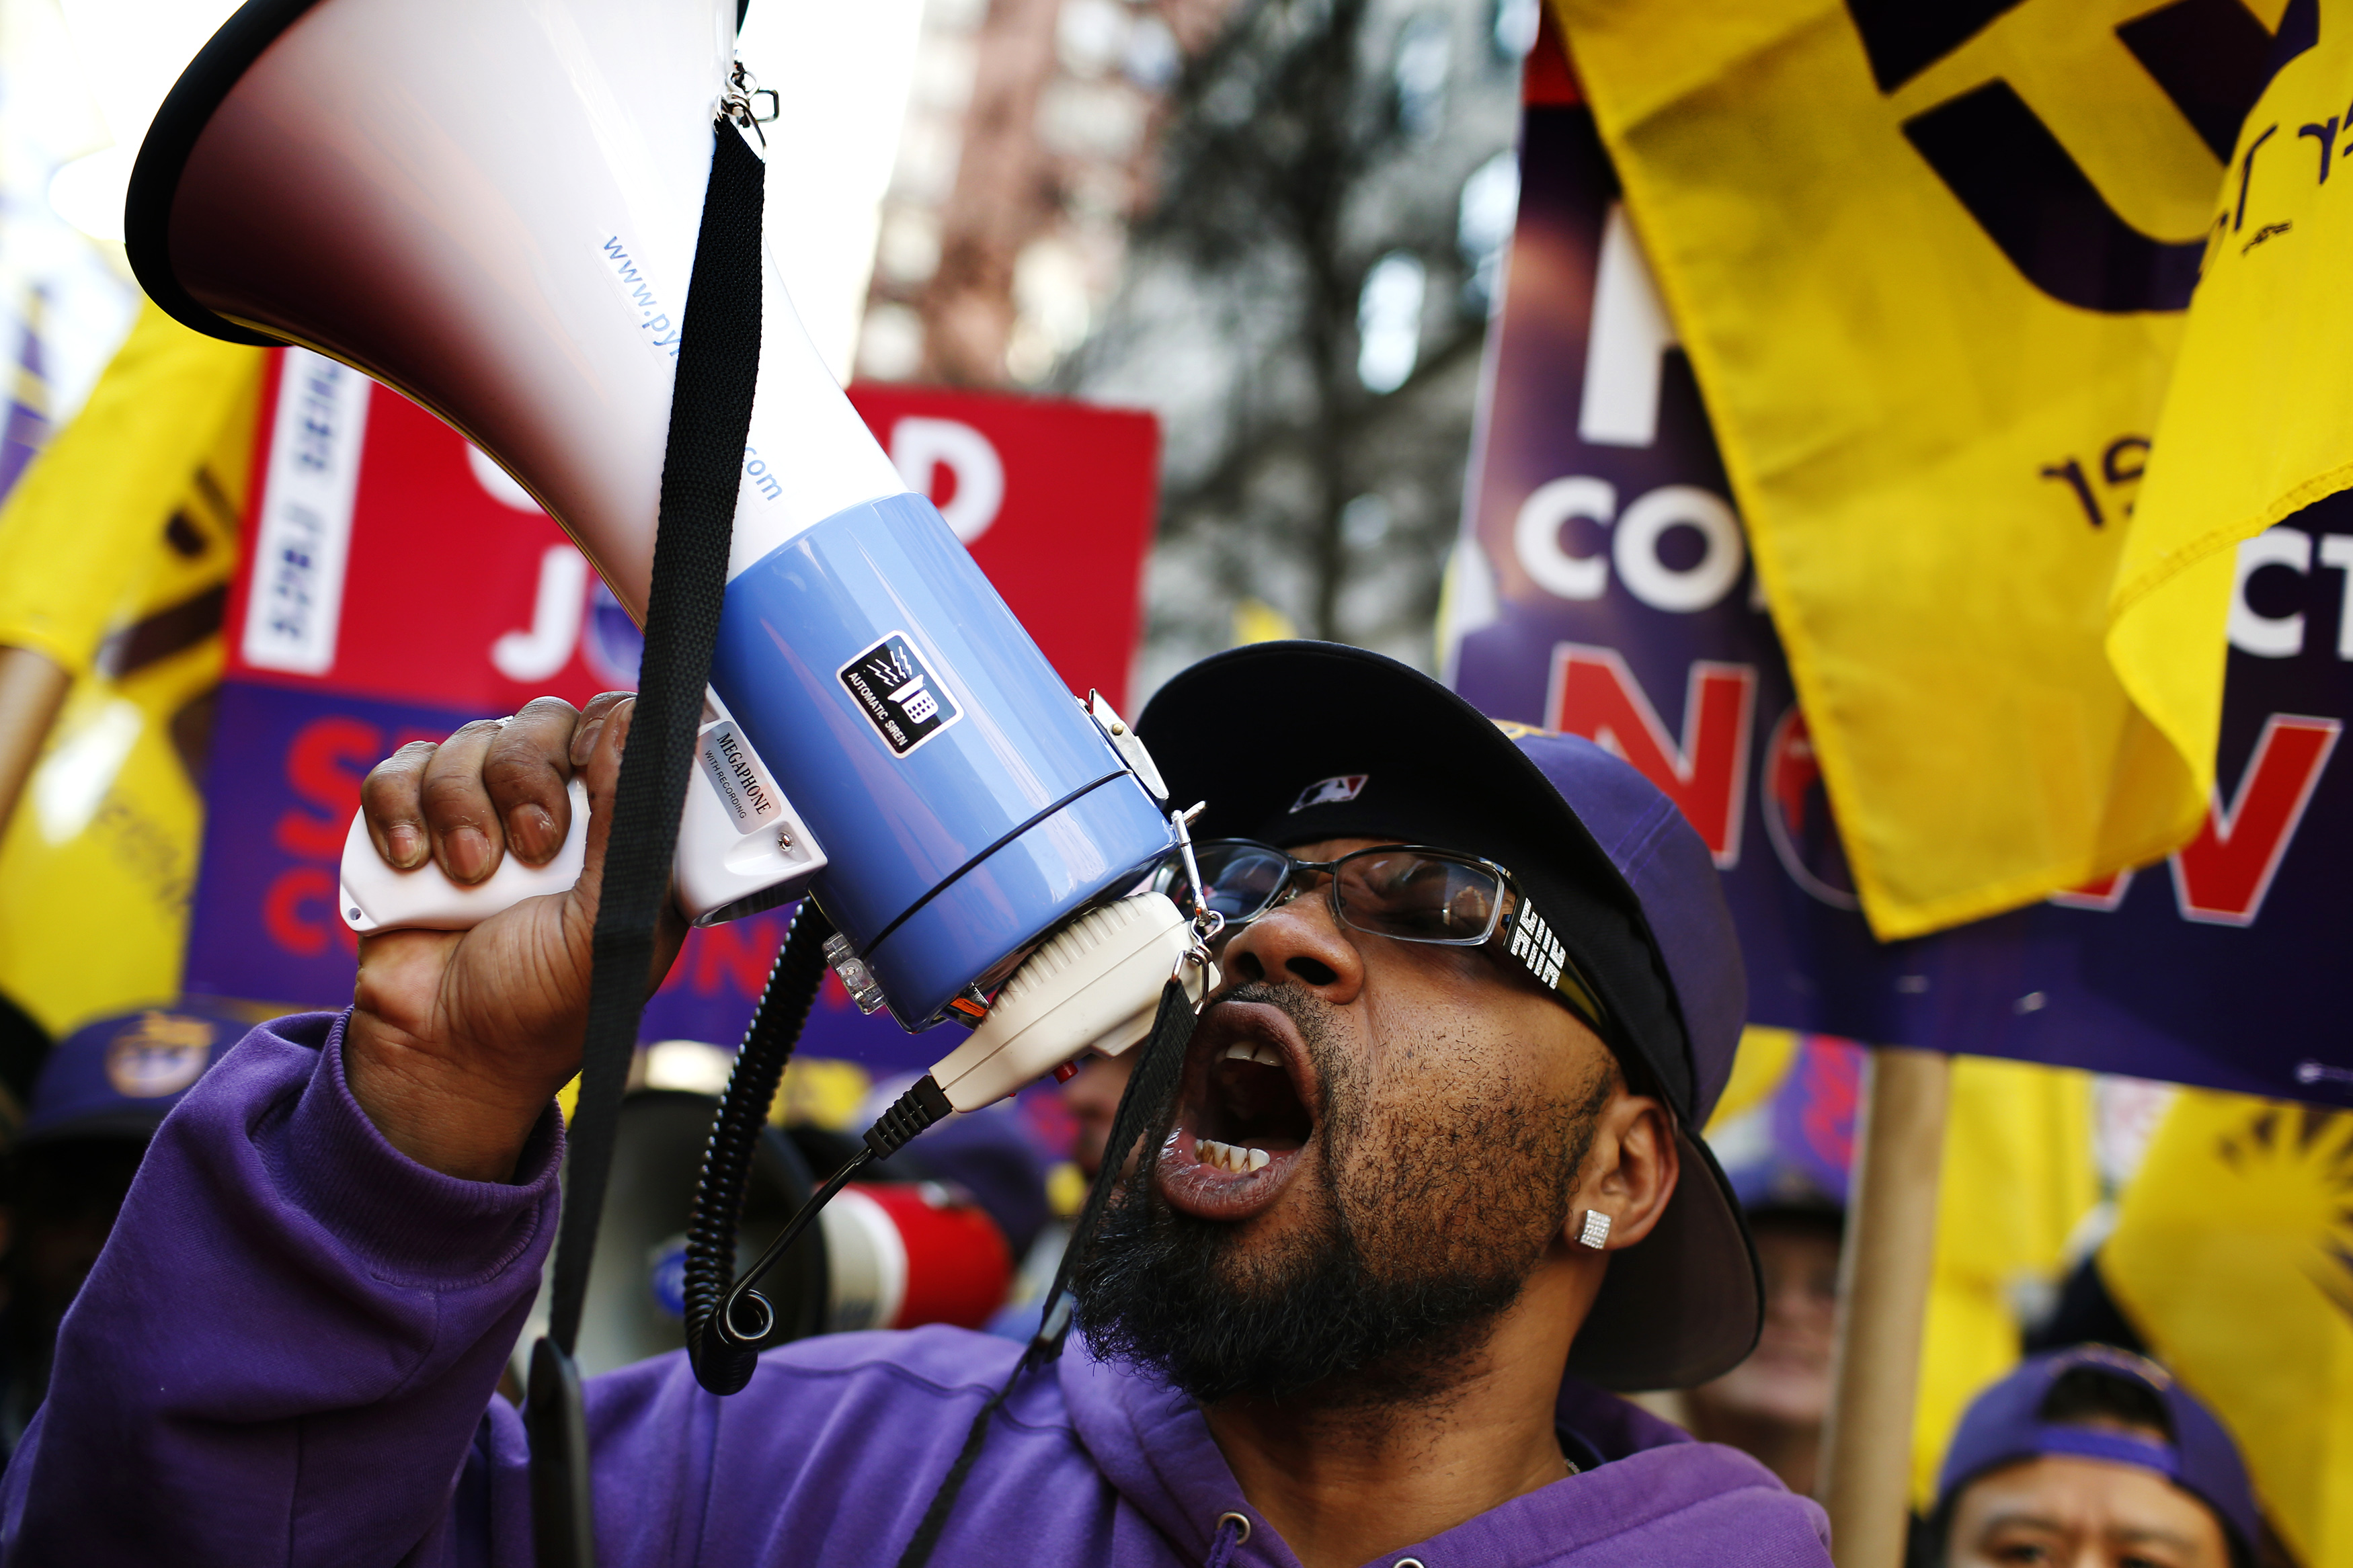 Members of the Service Employees International Union chant slogans during a protest in support of a new contract for apartment building workers in New York City, April 2, 2014. REUTERS/Mike Segar